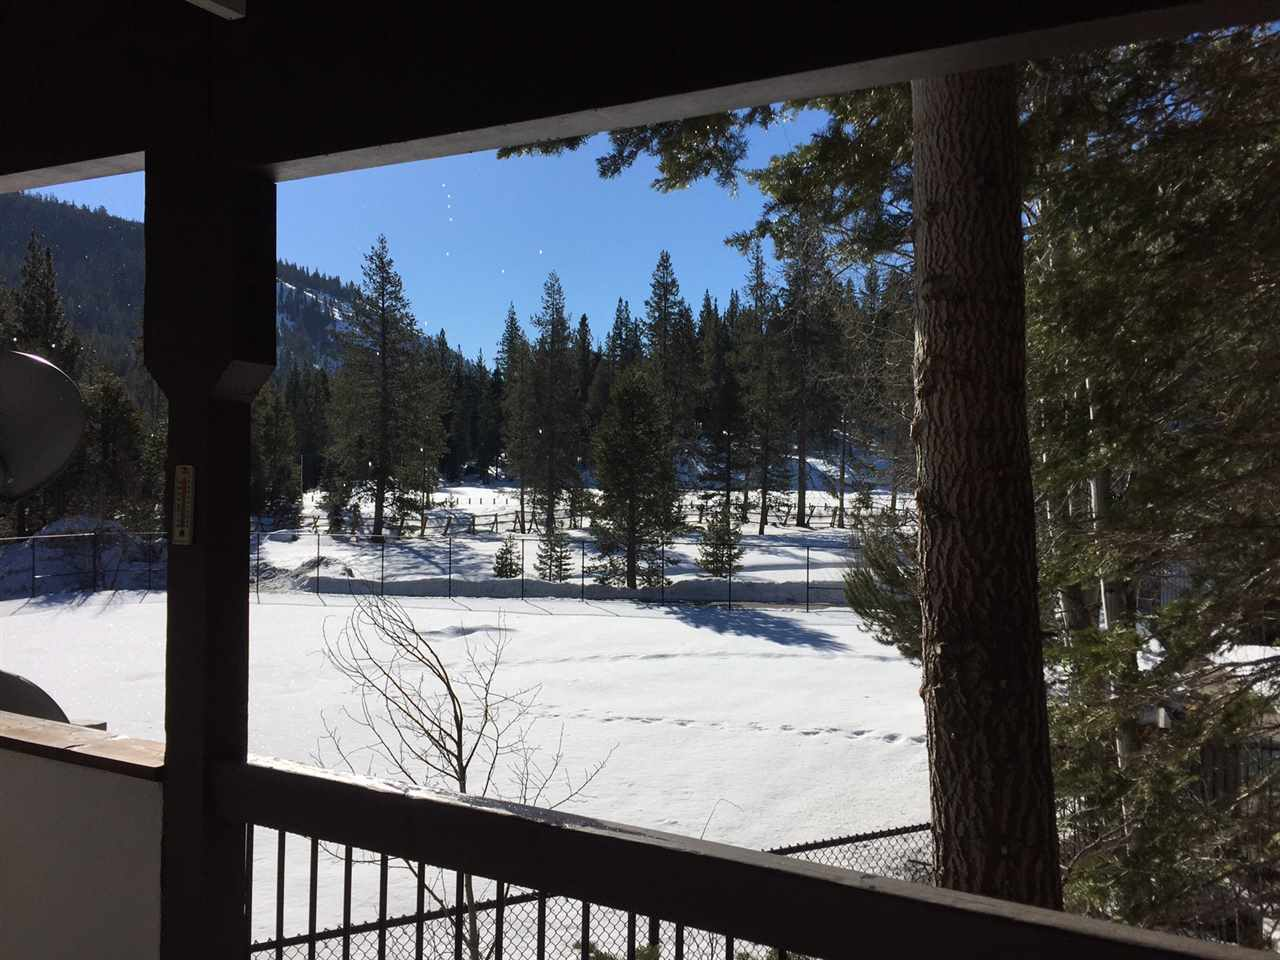 227 Squaw Valley Road # 46, Olympic Valley, CA 96146